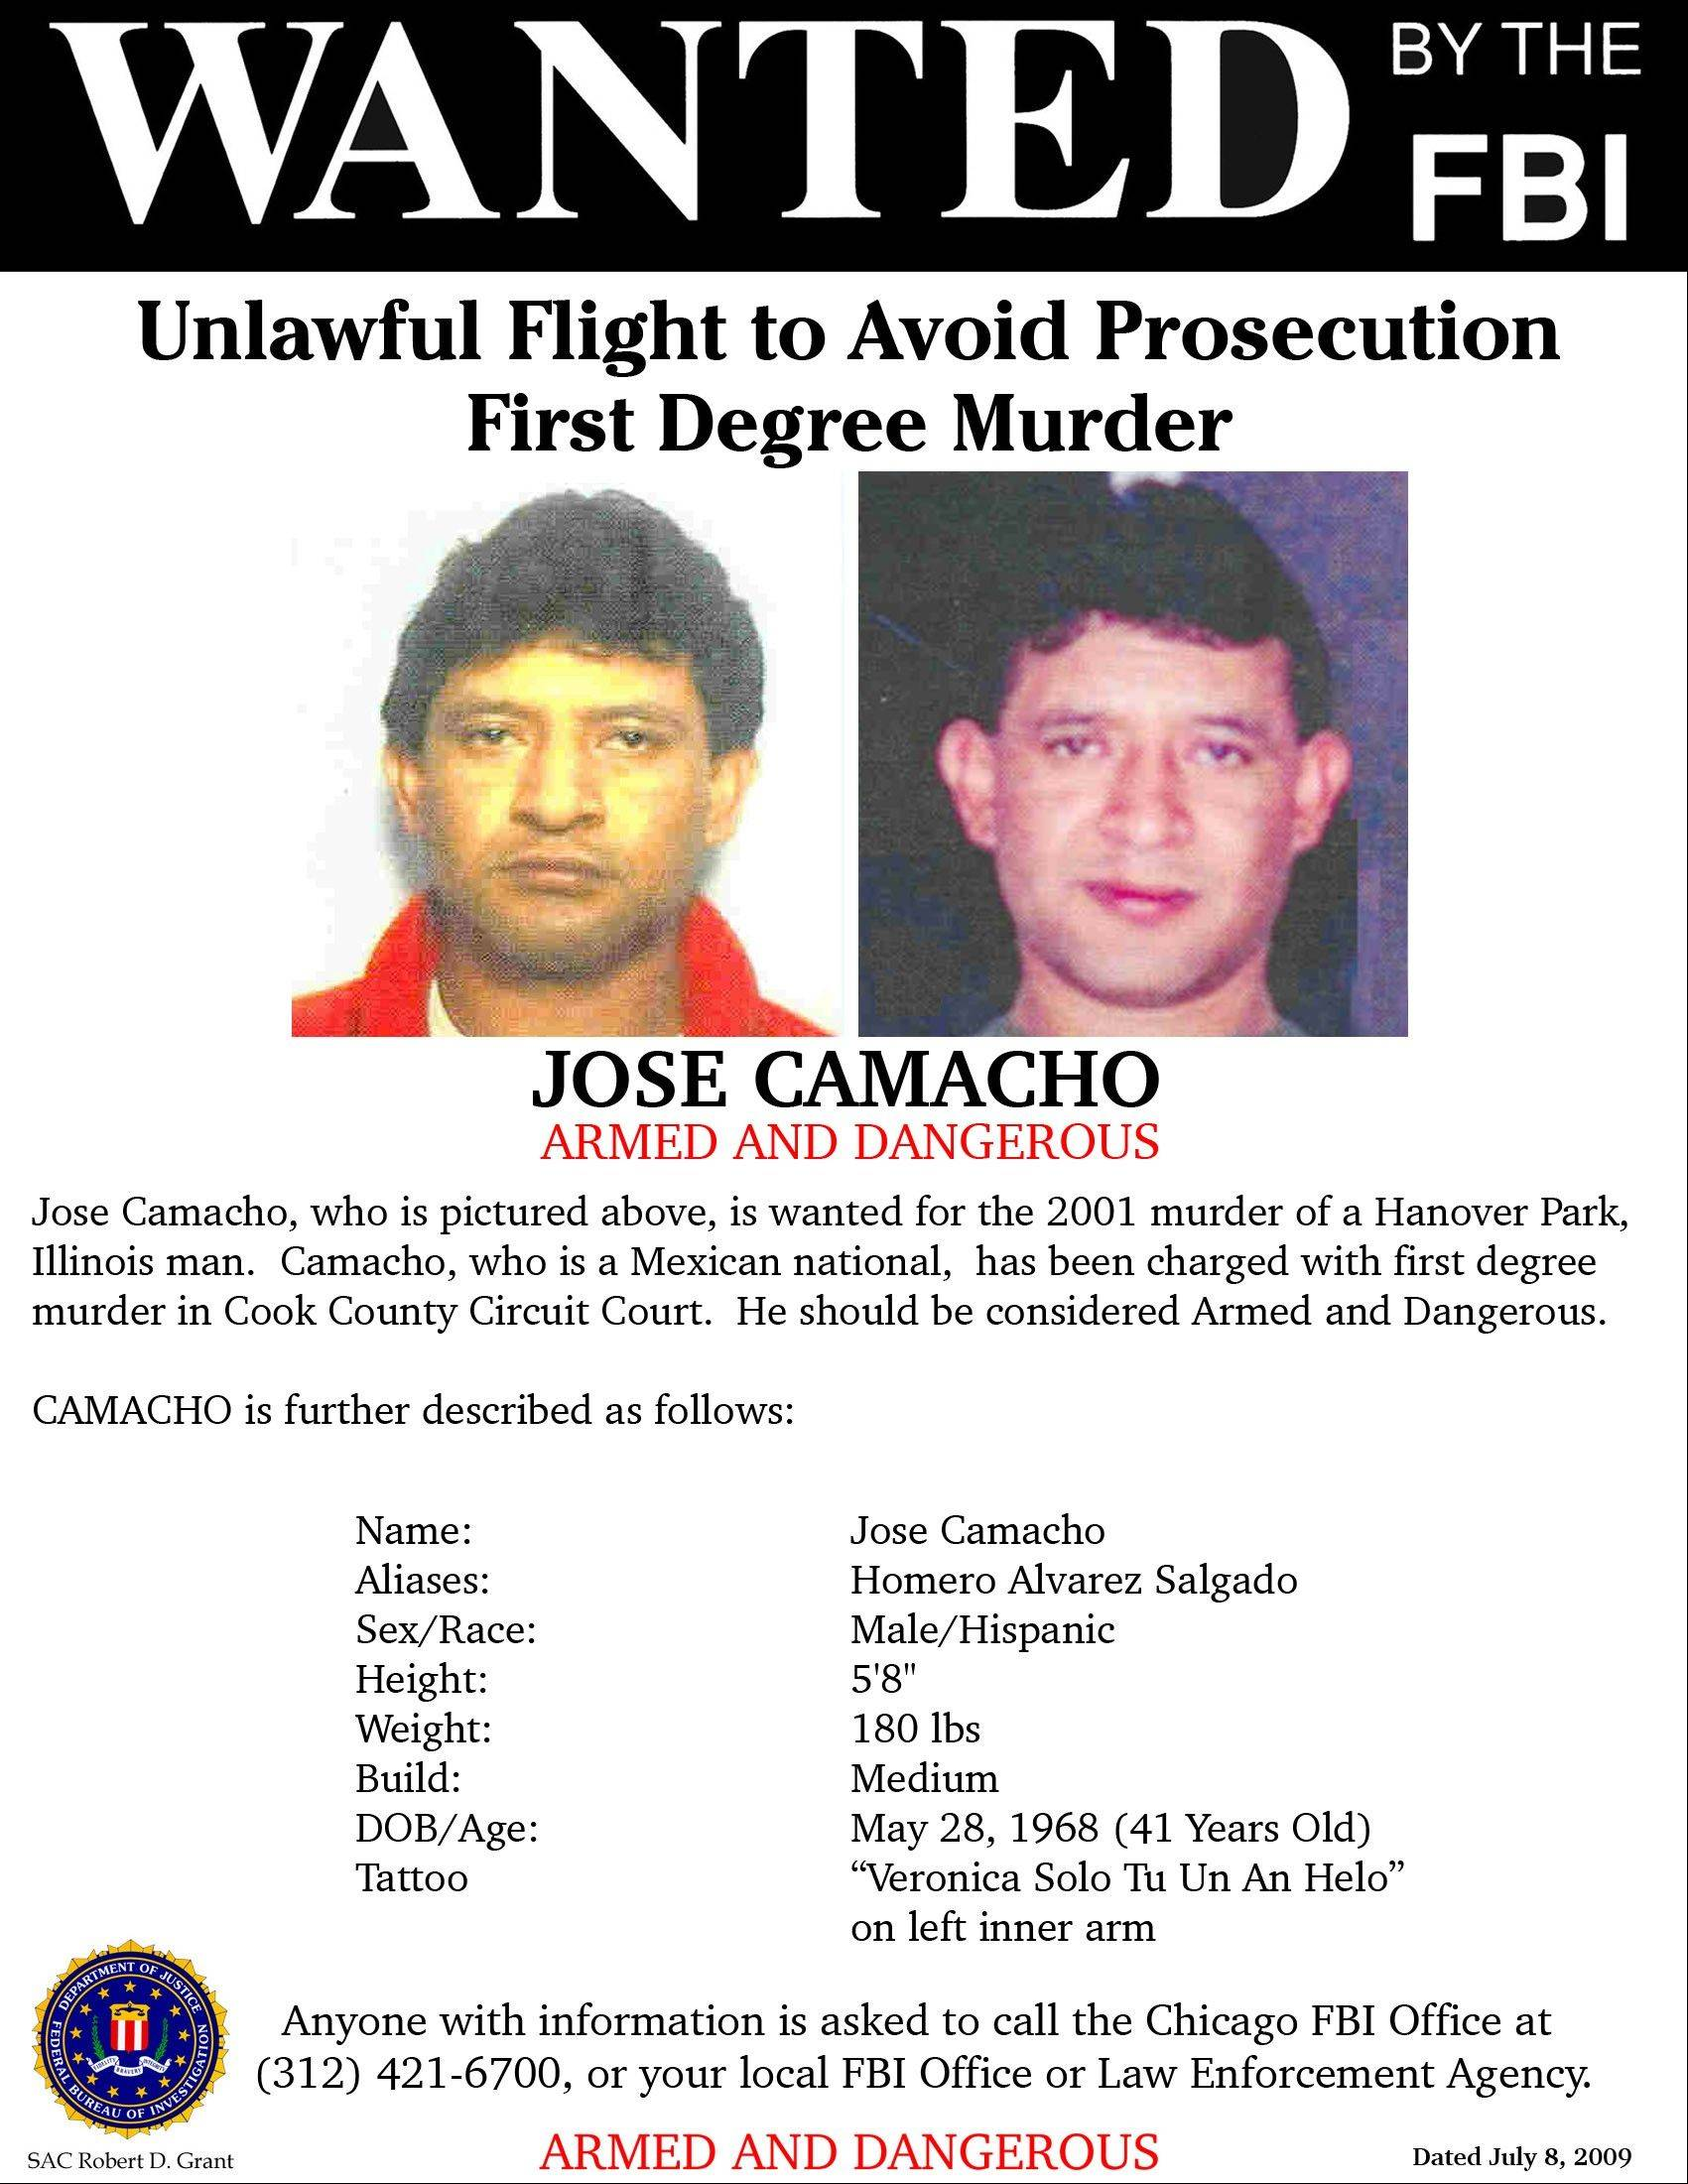 Fugitive Jose Camacho, profiled in this FBI wanted poster, has been captured in Mexico and now faces extradition back to Illinois, where he faces first-degree murder charge. Camacho is accused of killing a 28-year-old Hanover Park man found dead in a Schaumburg pond on May 25, 2001.